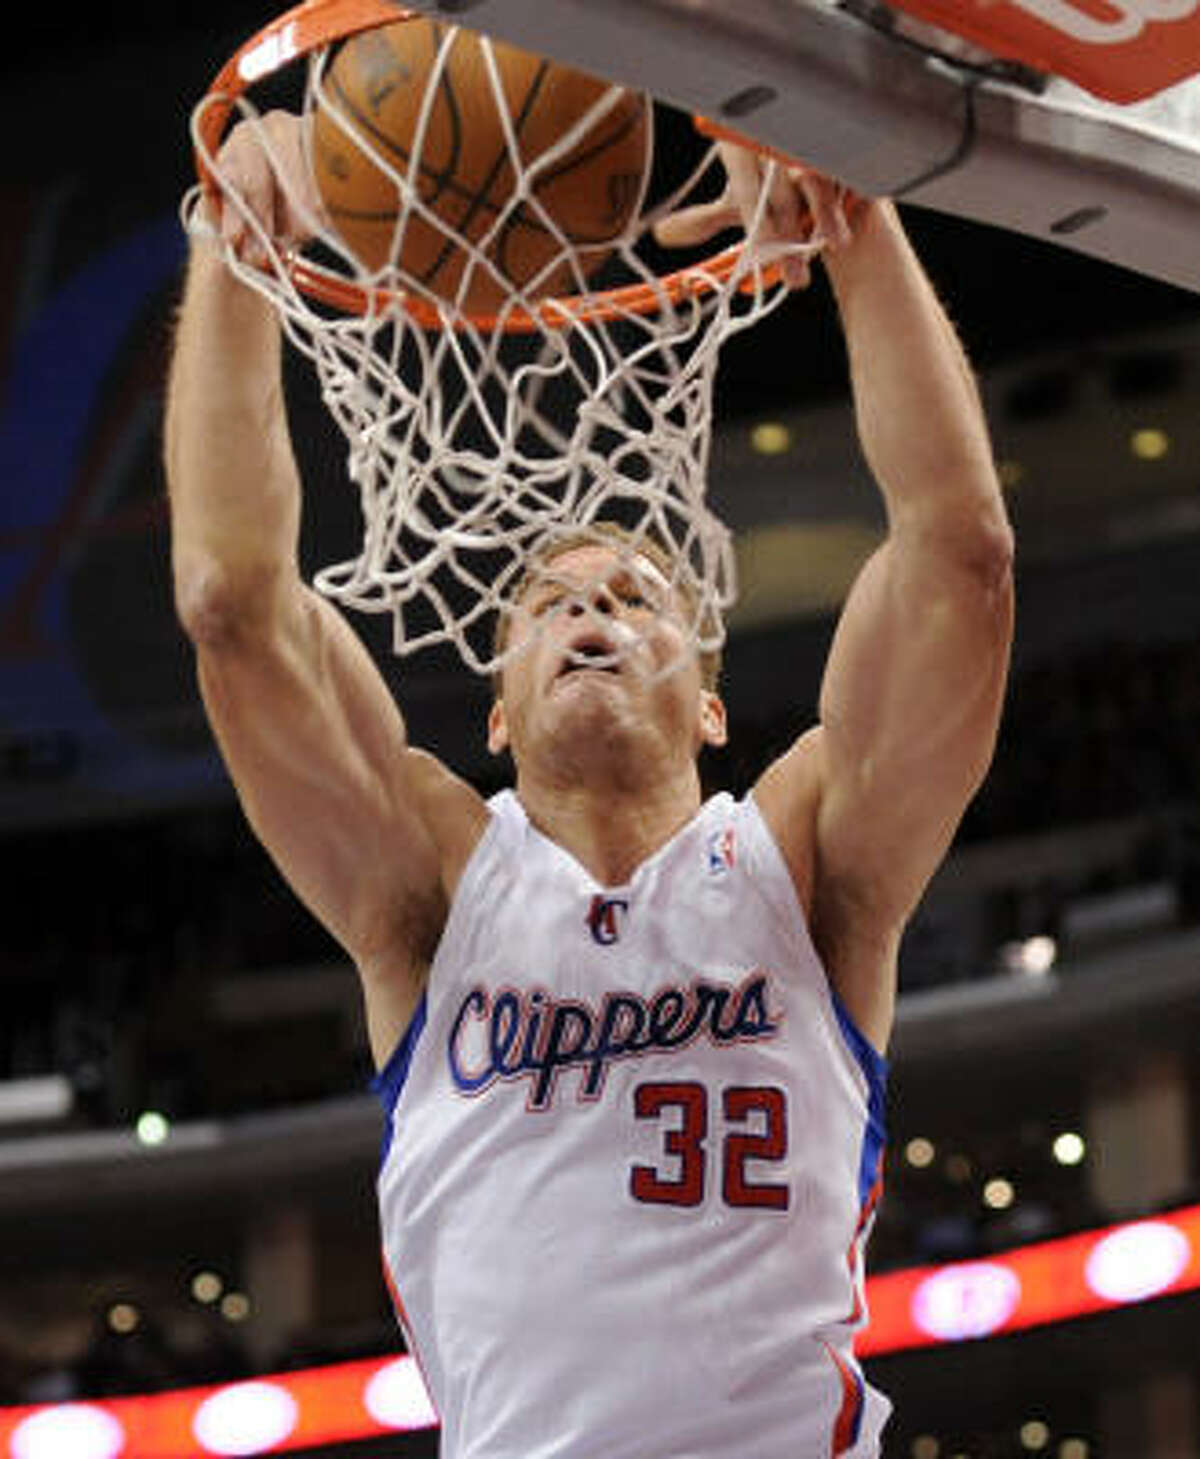 Blake Griffin, Clippers Dunks: 99 Pct. of made shots: 26.6%